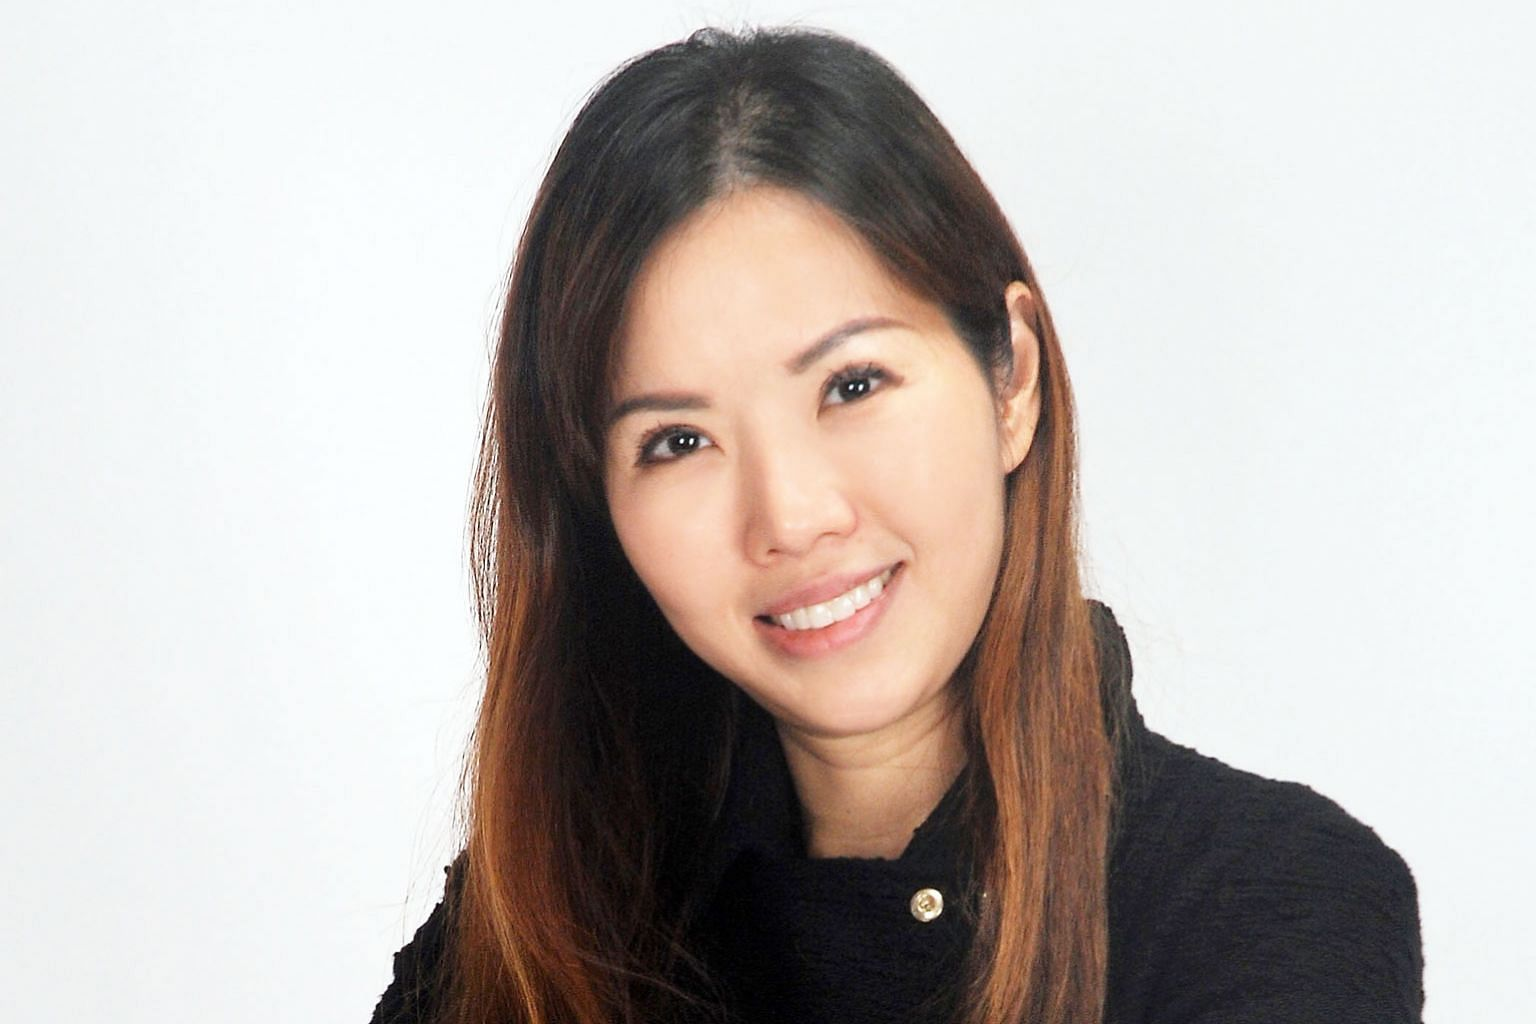 Ms Jasmmine Wong, currently at Nestle, will assume her new role in July and report to Inchcape Asia CEO George Ashford.